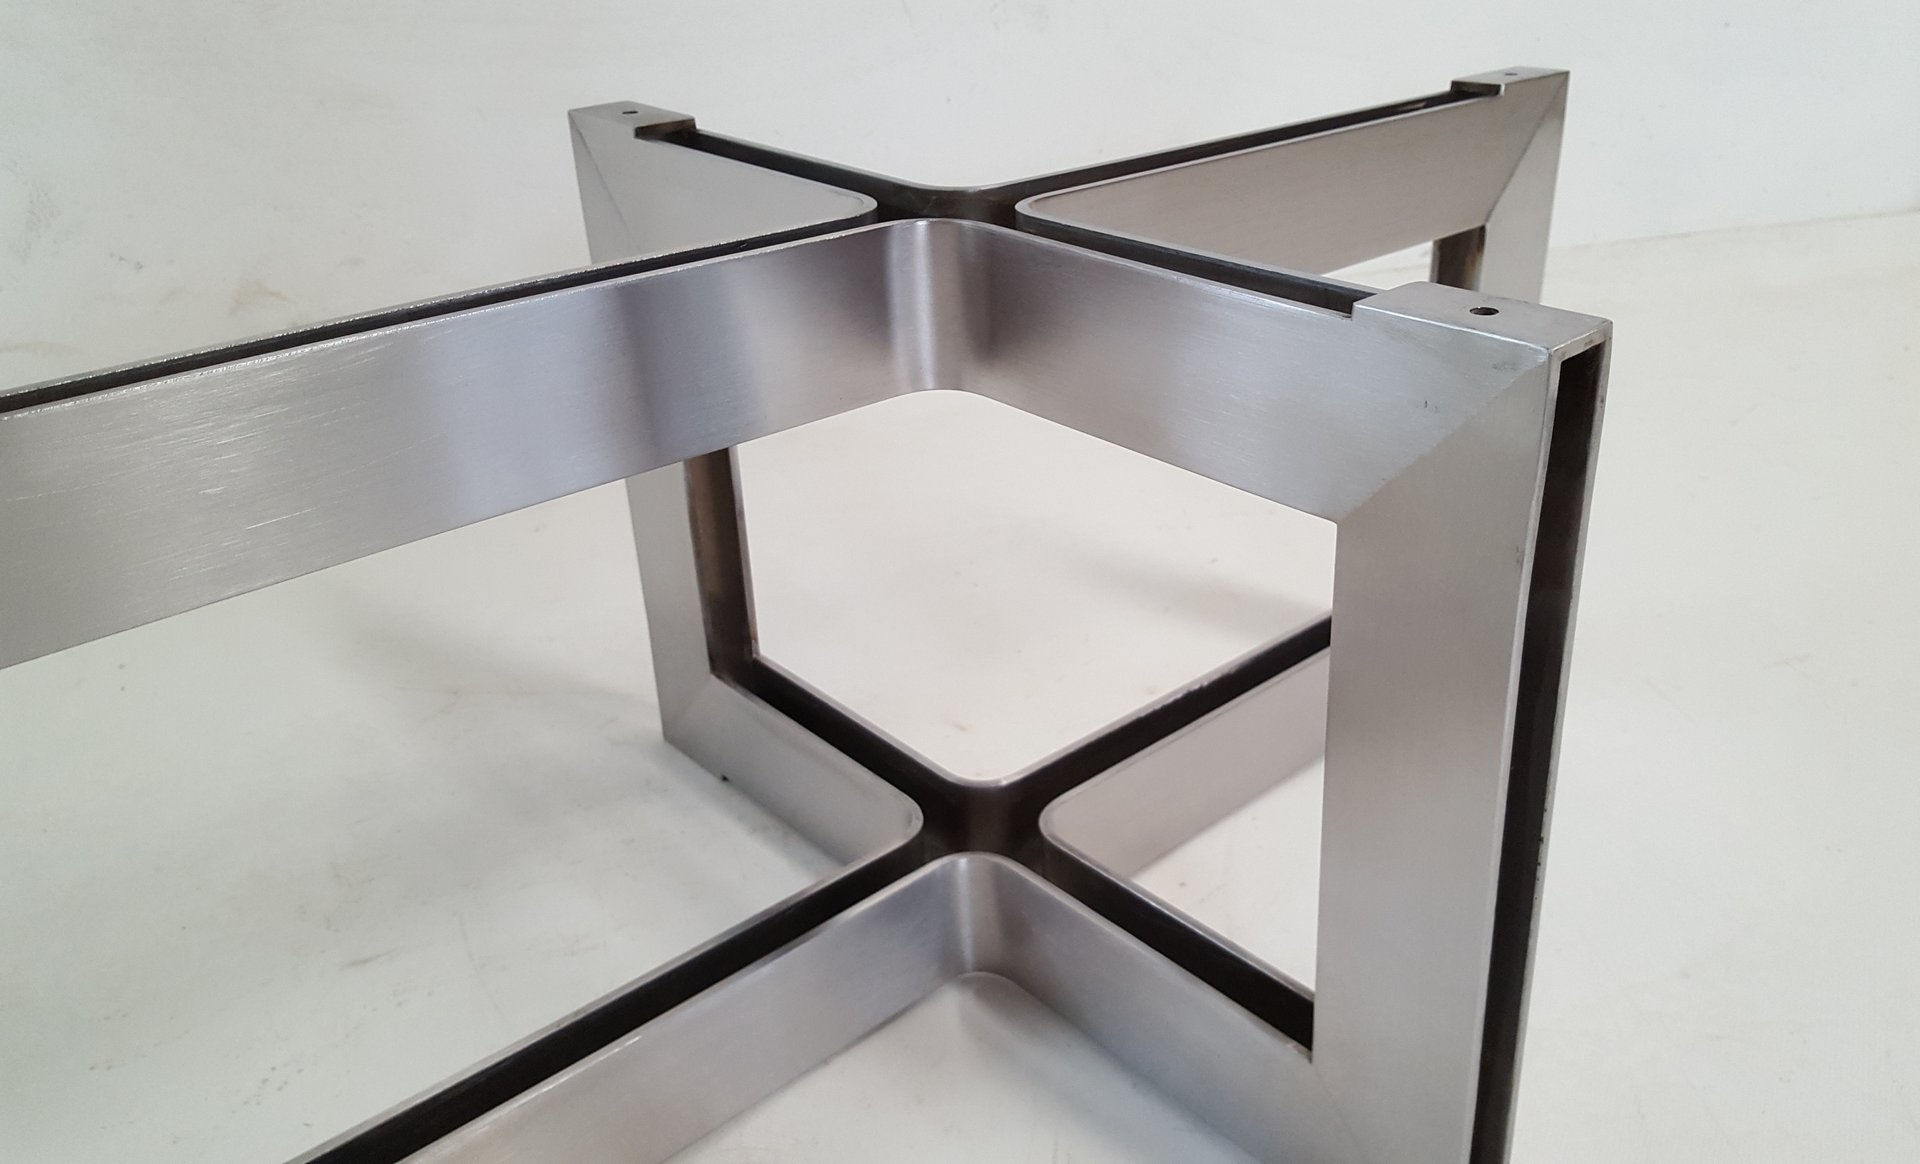 Stainless steel and glass coffee table 1970s for sale at pamono Steel and glass coffee table